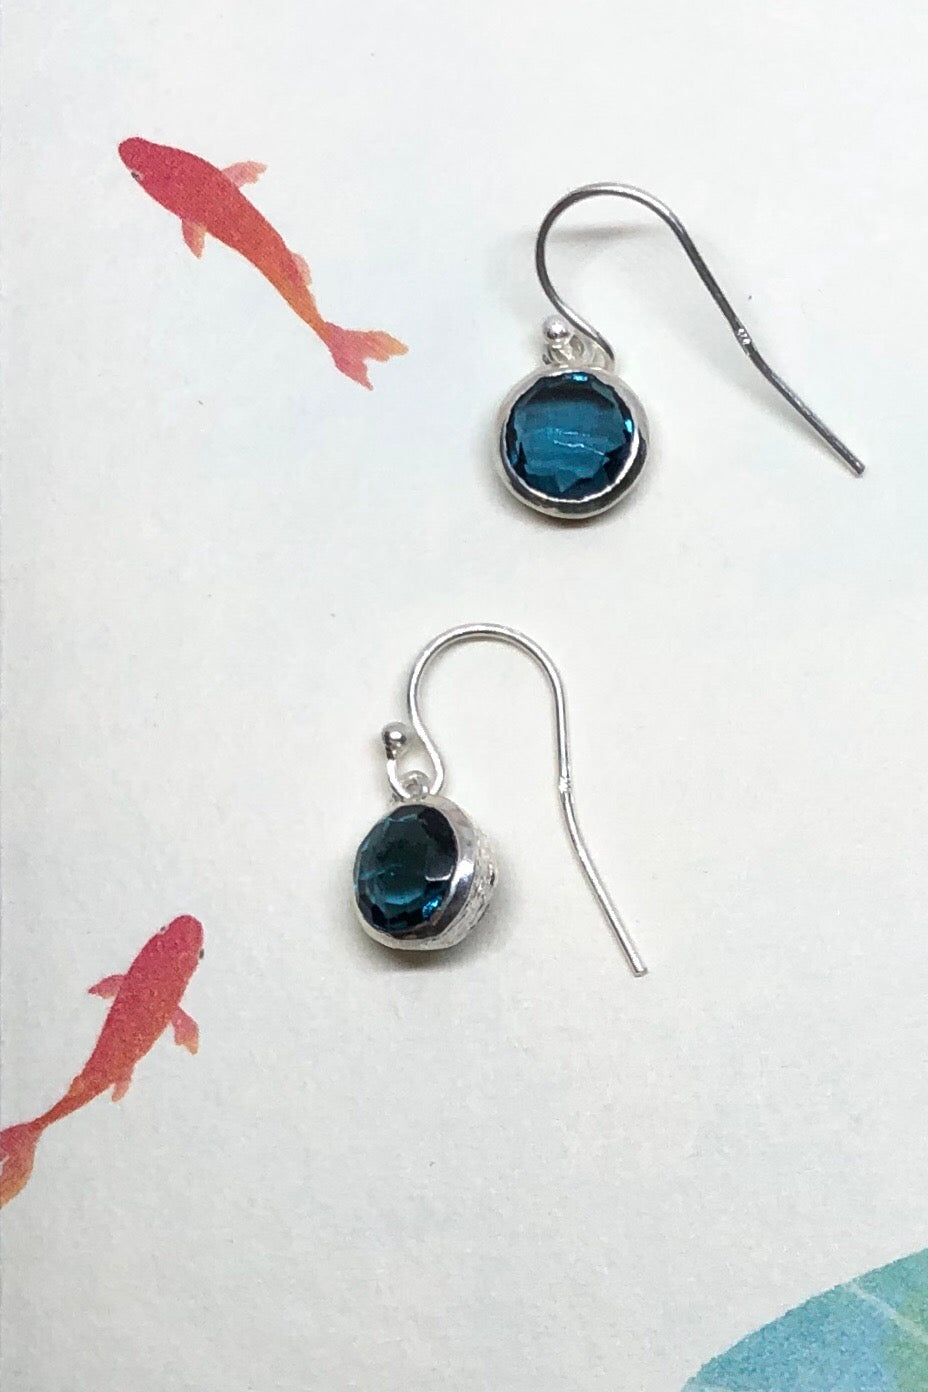 Oracle Earrings Rondo Montana Blue Quartz is a tiny gemstone earrings featuring approximate 2cm length including hook,  925 solid silver fish hook, modern minimalist design.